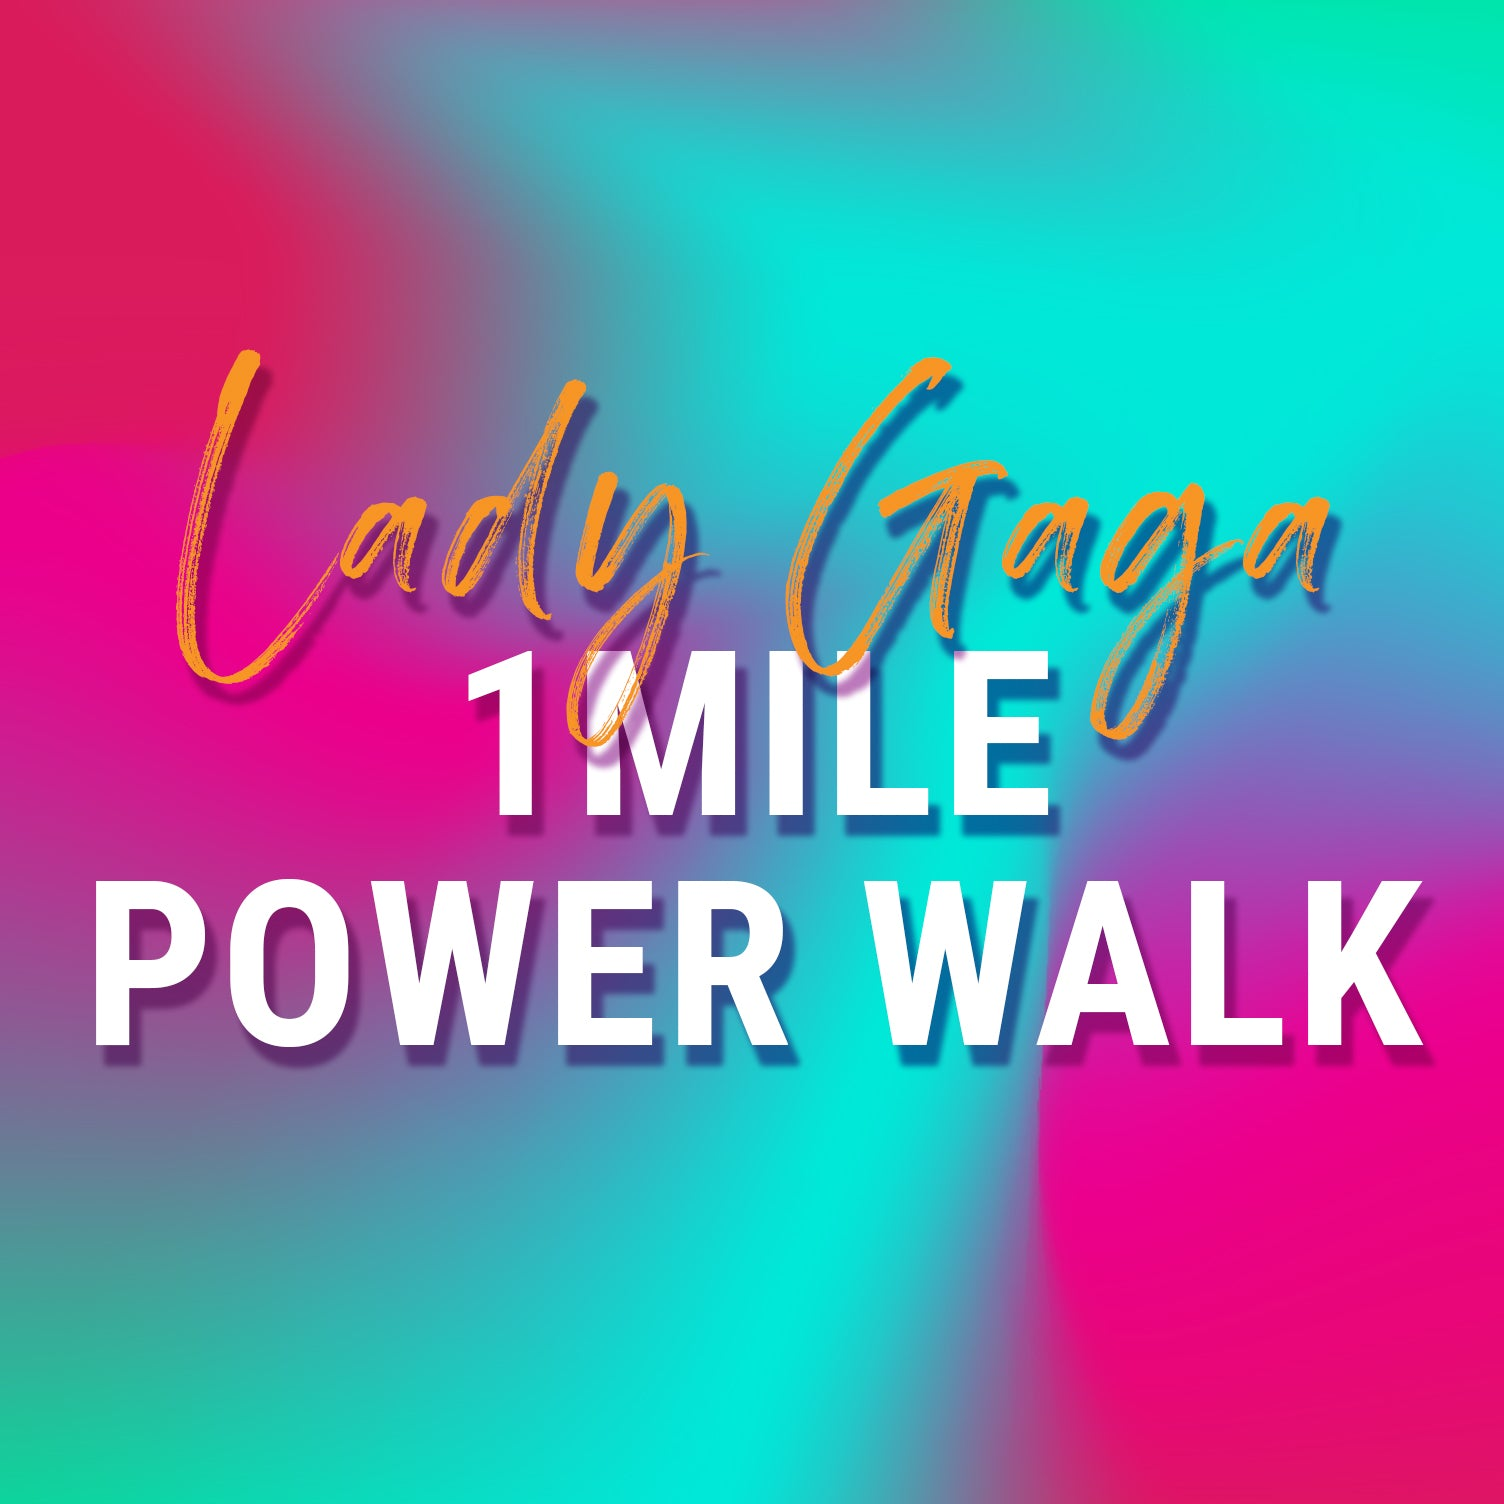 *WALK UP TO THE BEAT* LADY GAGA MIX | 1 MILE POWER WALK